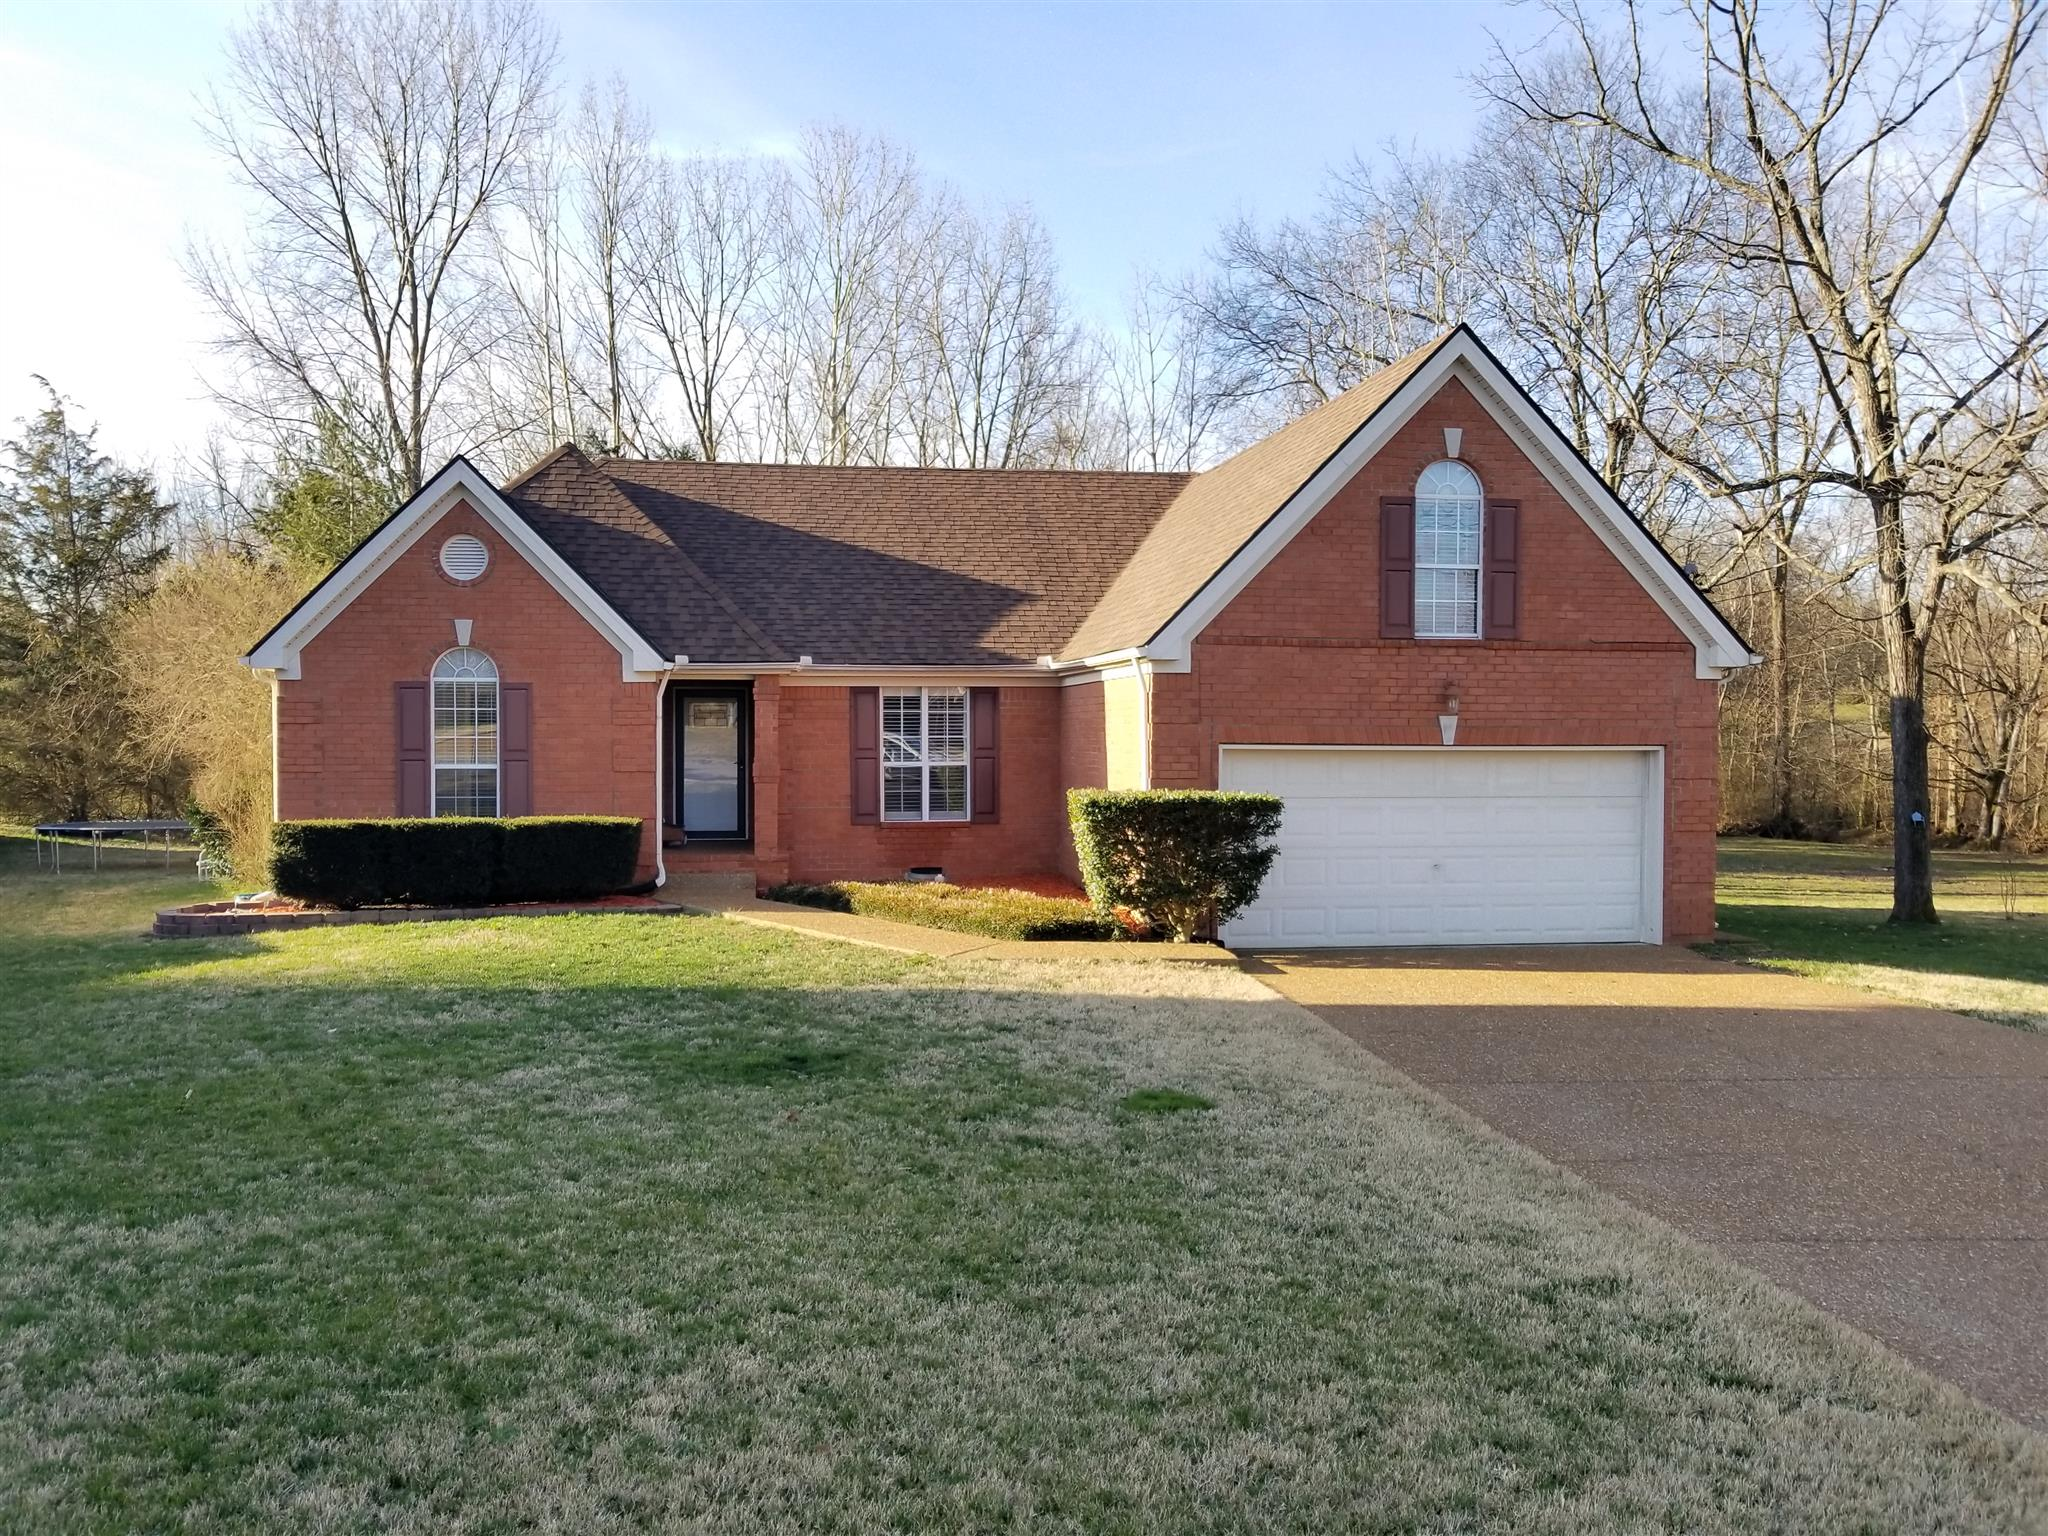 Marvelous Home With Park/Playground Steps Away From Back Yard Located At 1705 Falcon Ct., Mount Juliet, TN., 37122